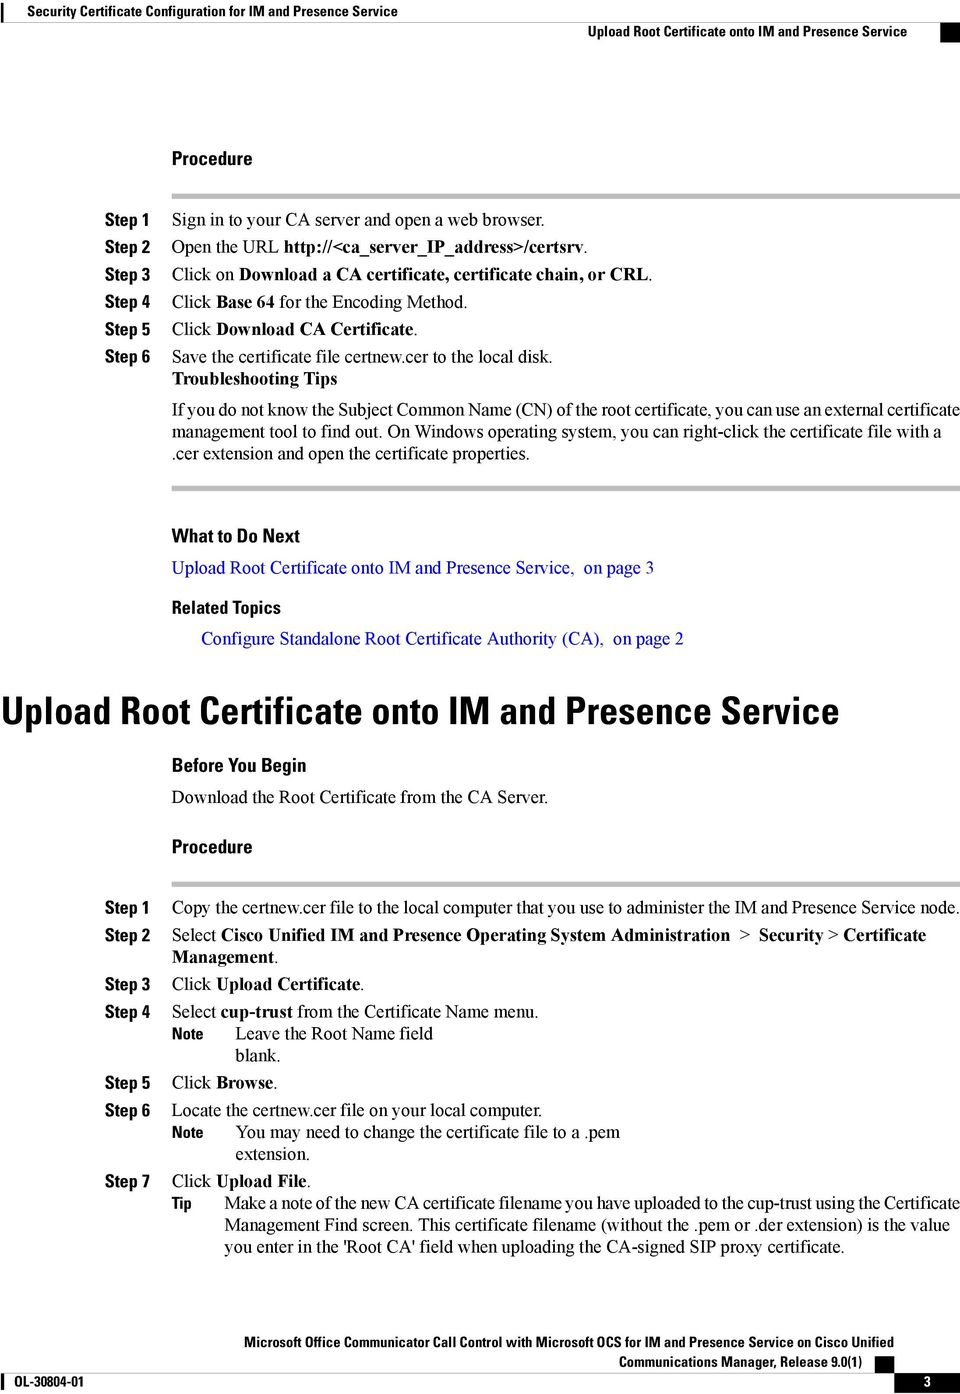 Security Certificate Configuration for IM and Presence